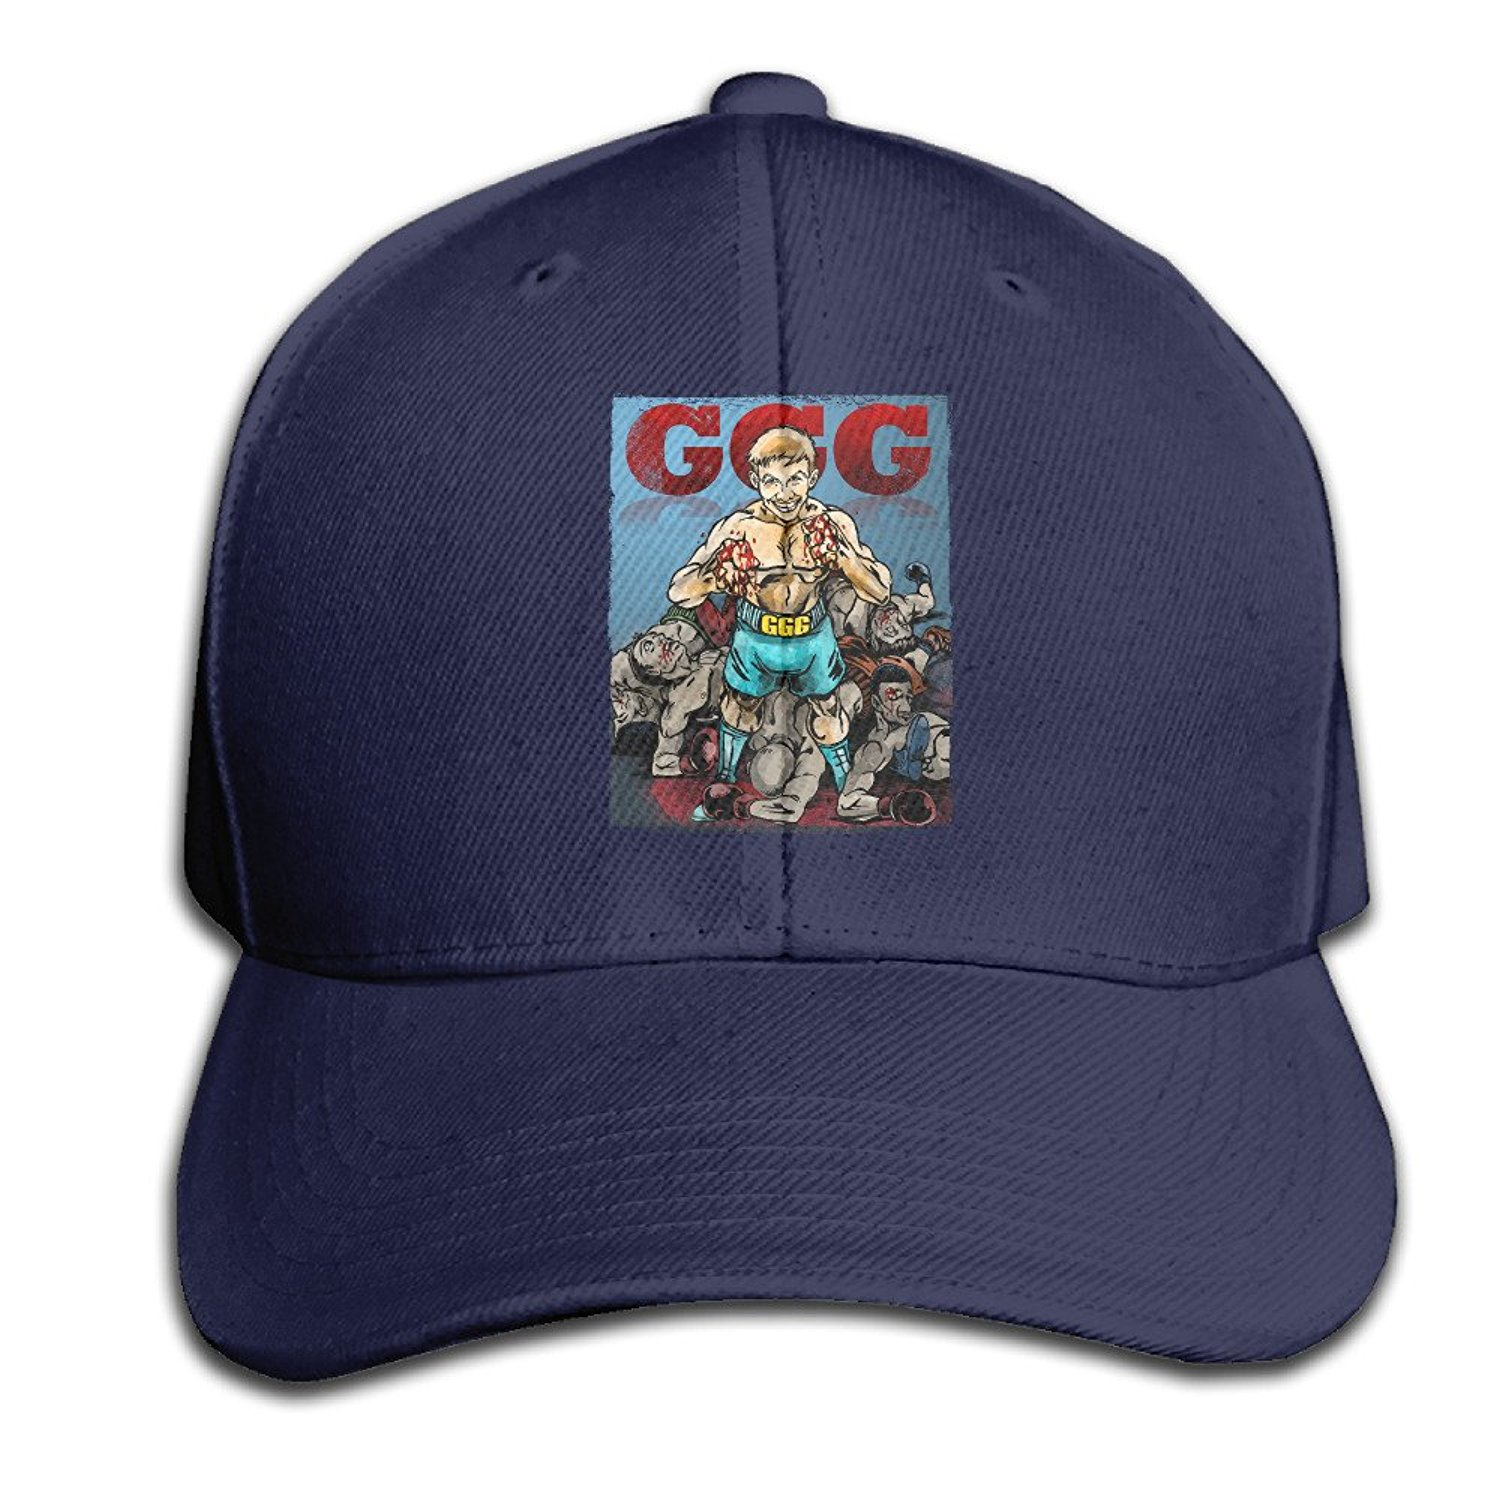 1cabf25b Get Quotations · Kexiaos Gennady Golovkin GGG Boxing Plain Adjustable  Snapback Hats Caps